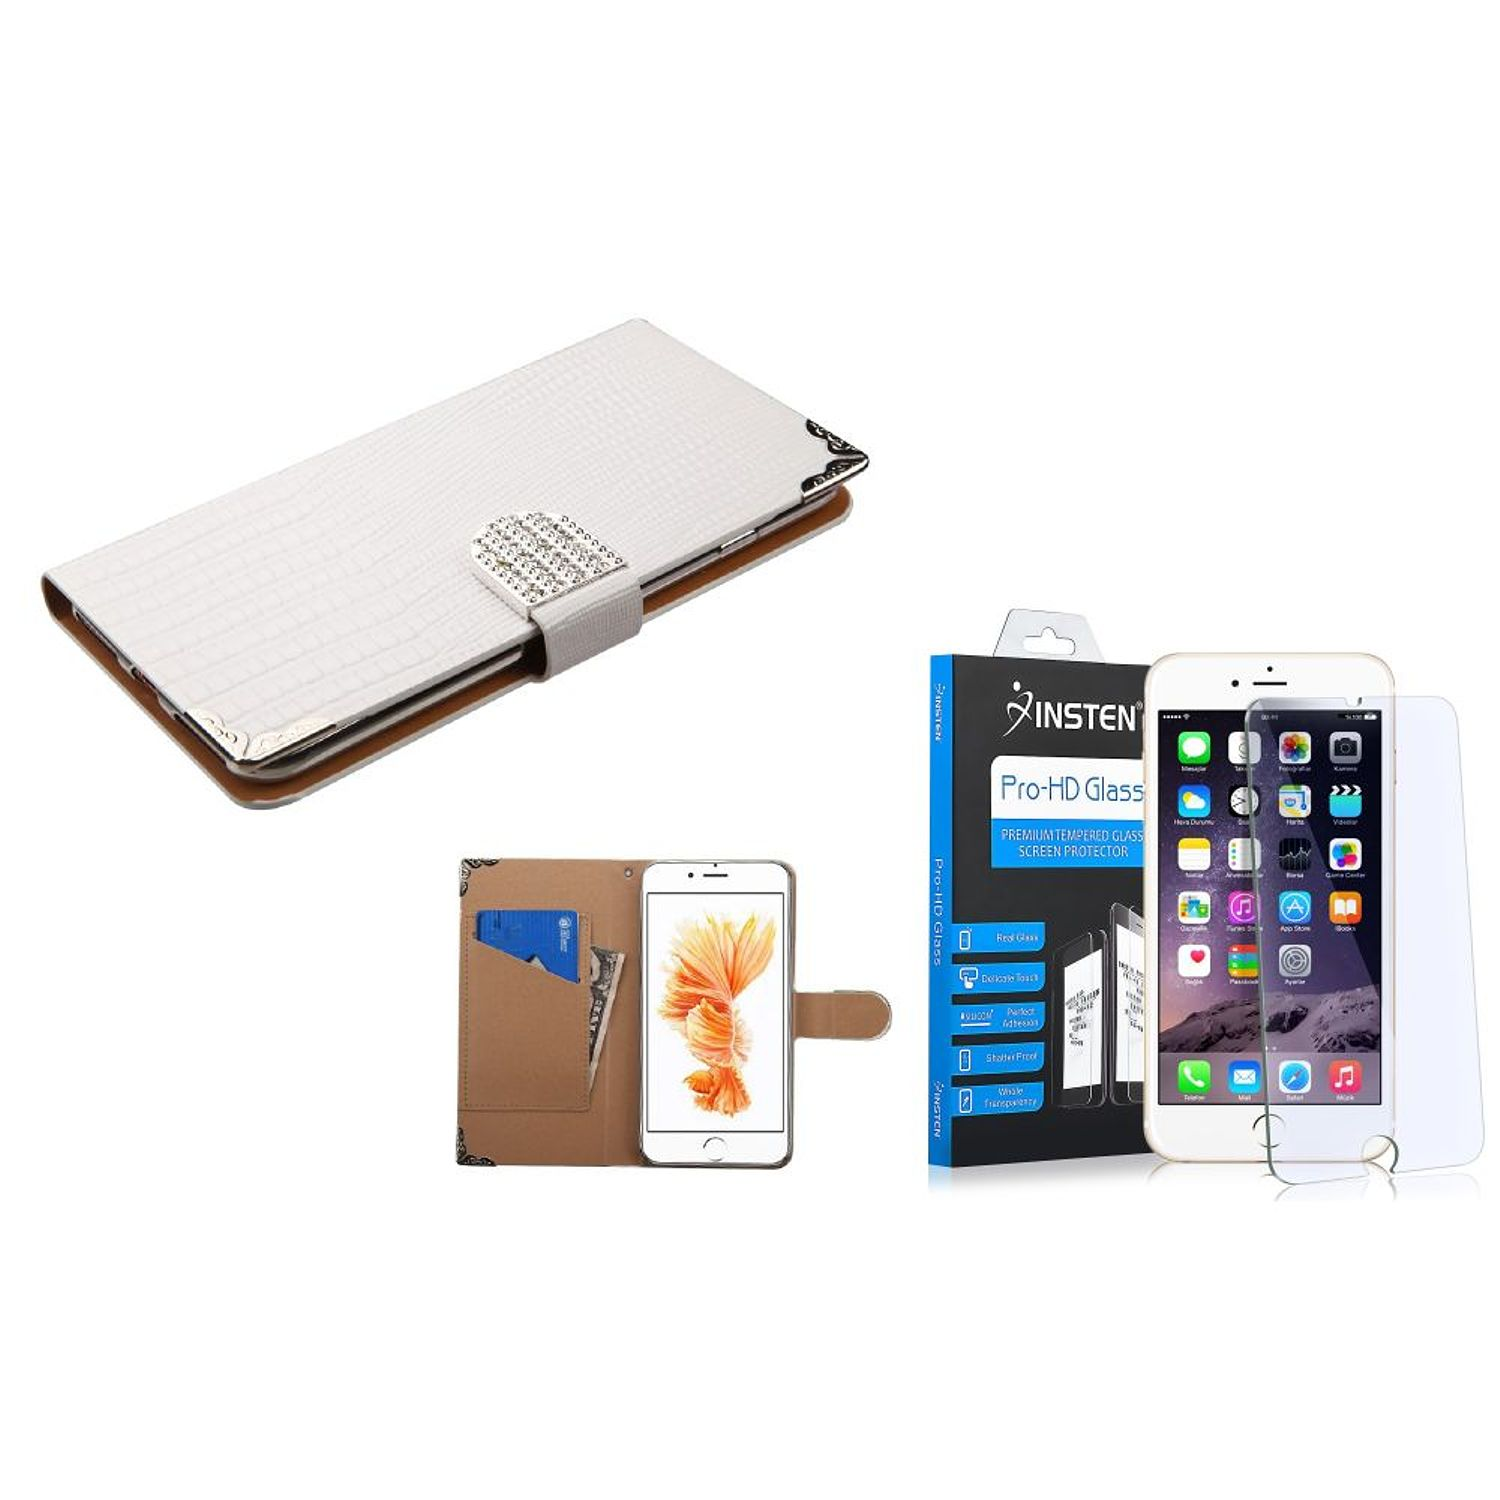 Insten for iPhone 8 Plus / iPhone 7 Plus- Glass Protector + White Crocodile Skin Wallet Leather Case (with Metal Diamonds Buckle)